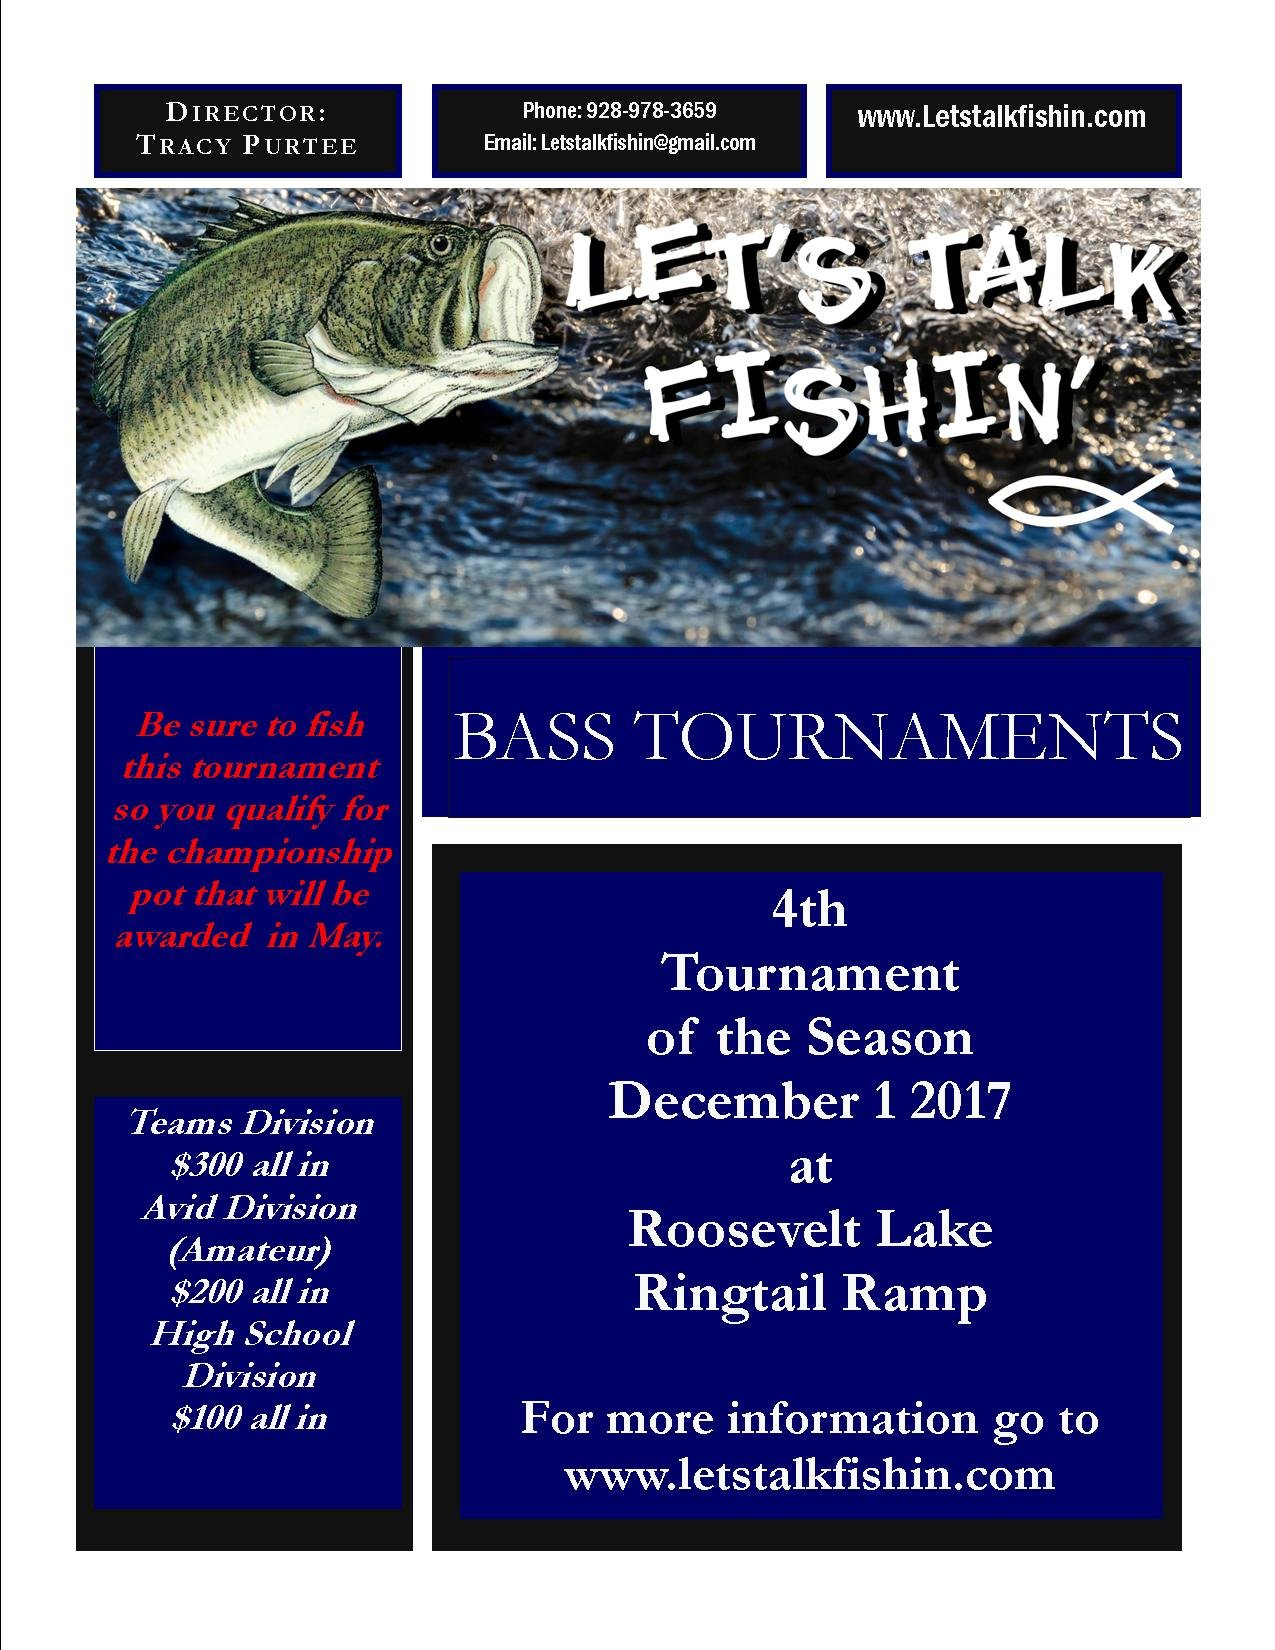 Click image for larger version  Name:4th Tournament.jpg Views:1525 Size:285.4 KB ID:96770